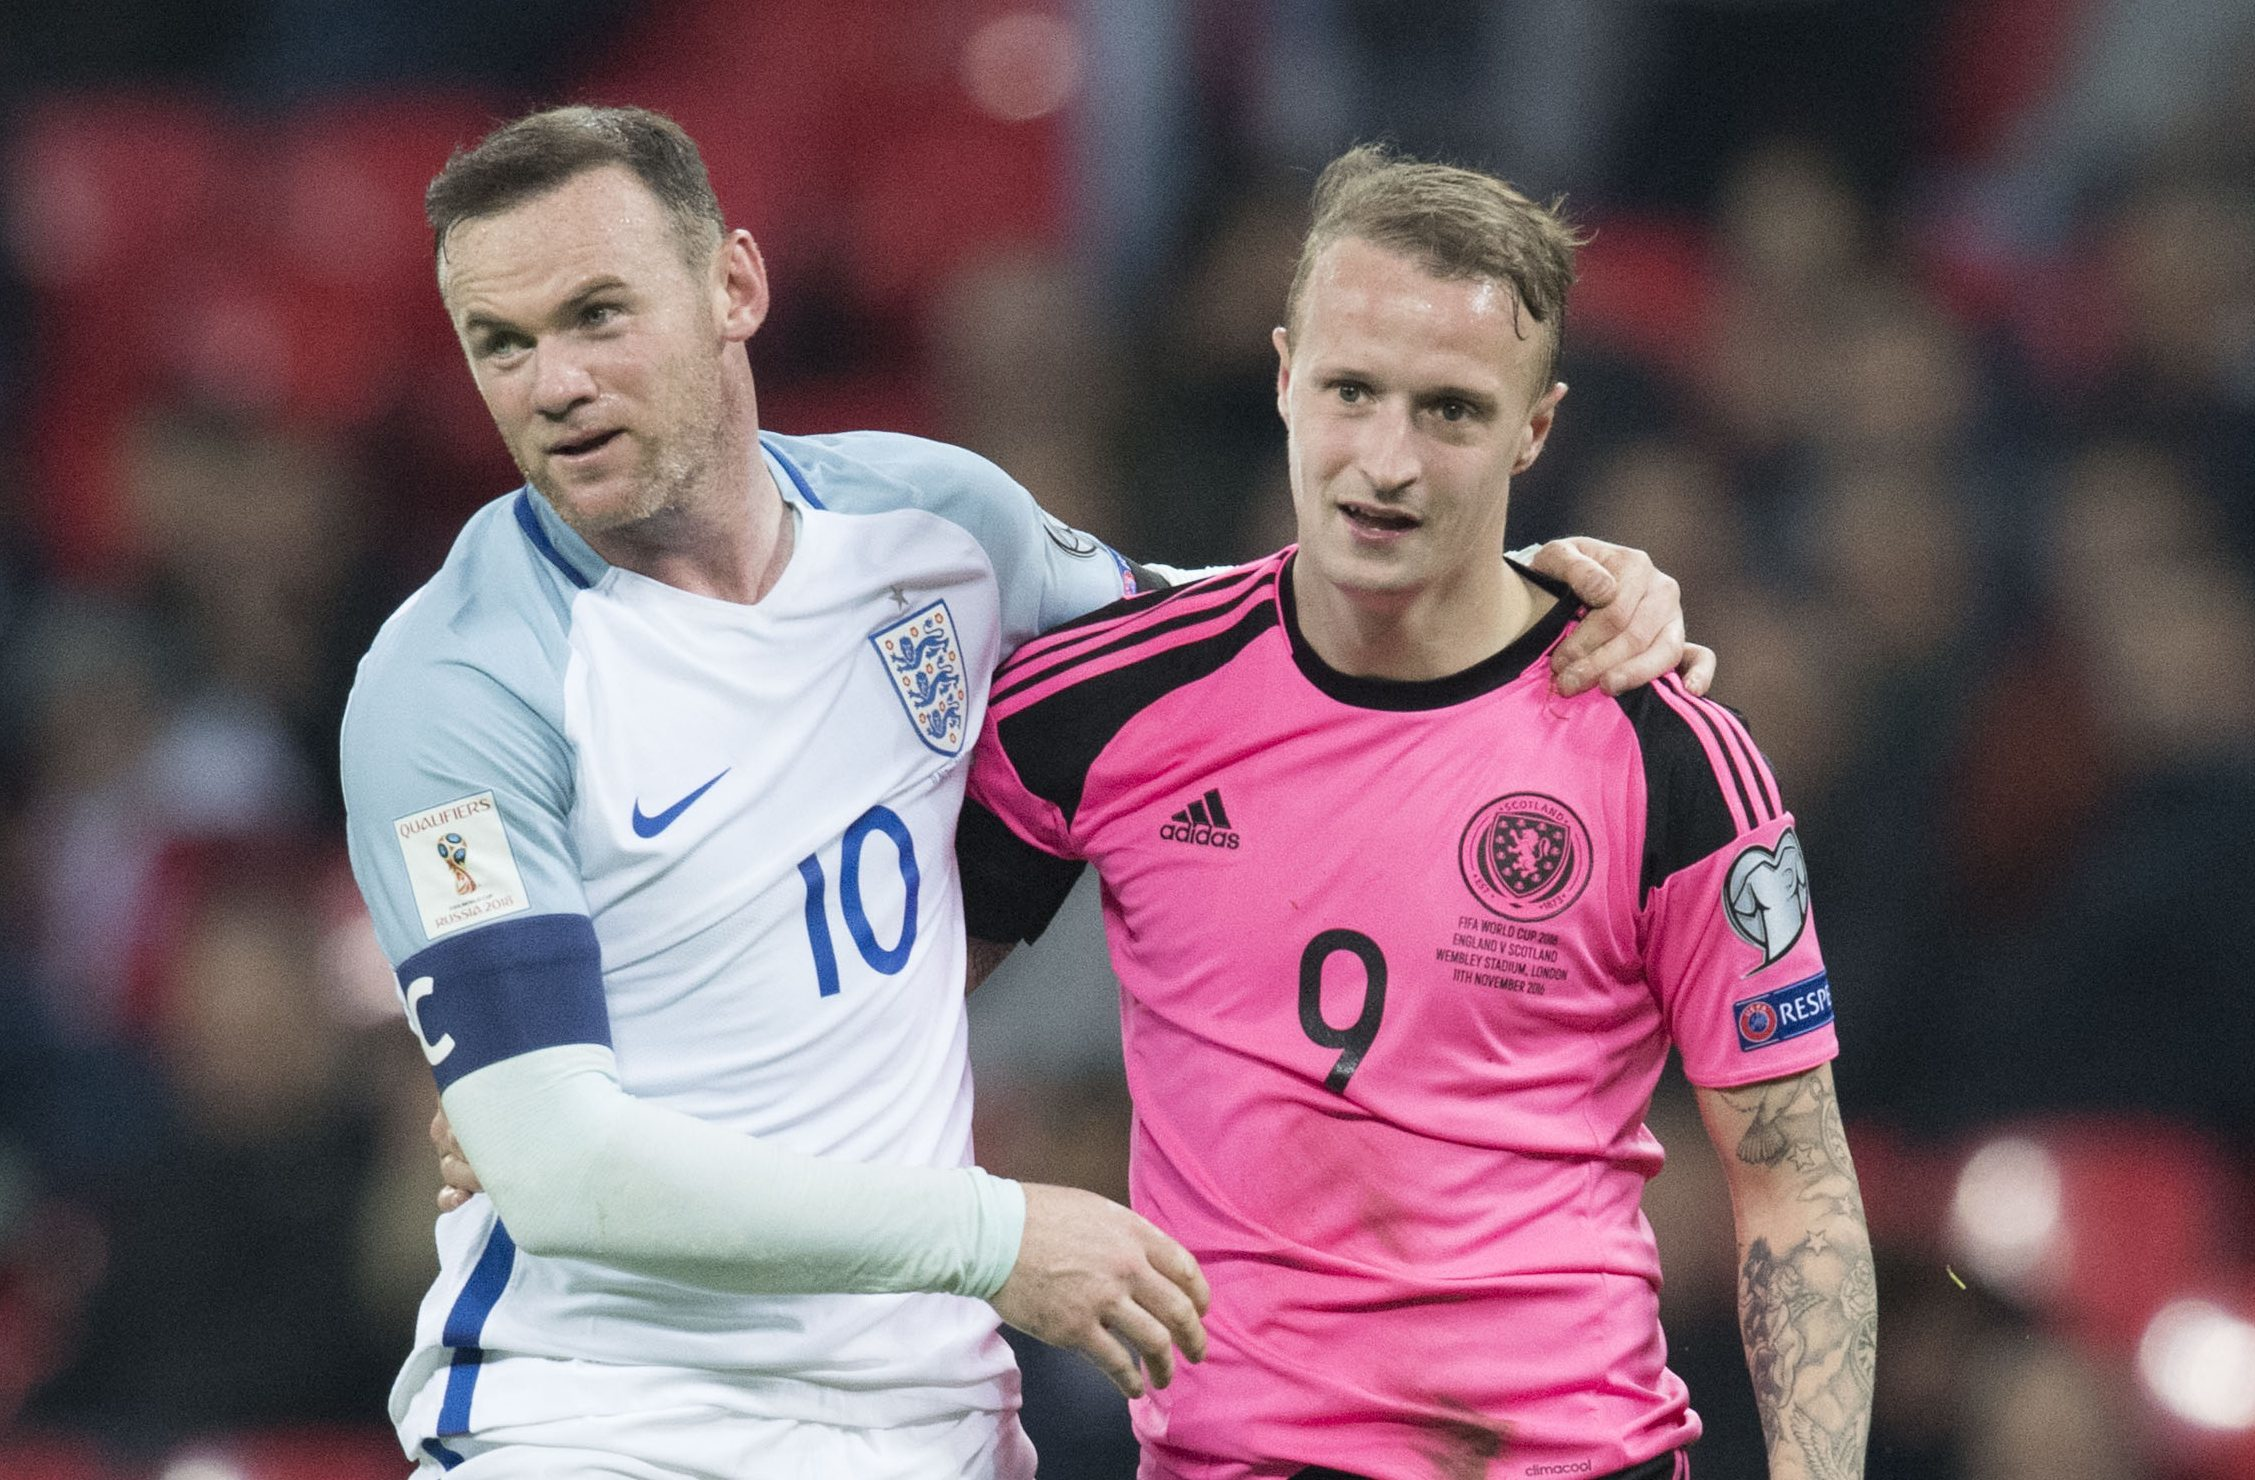 Leigh Griffiths with Wayne Rooney at full time (SNS Group / Alan Harvey)